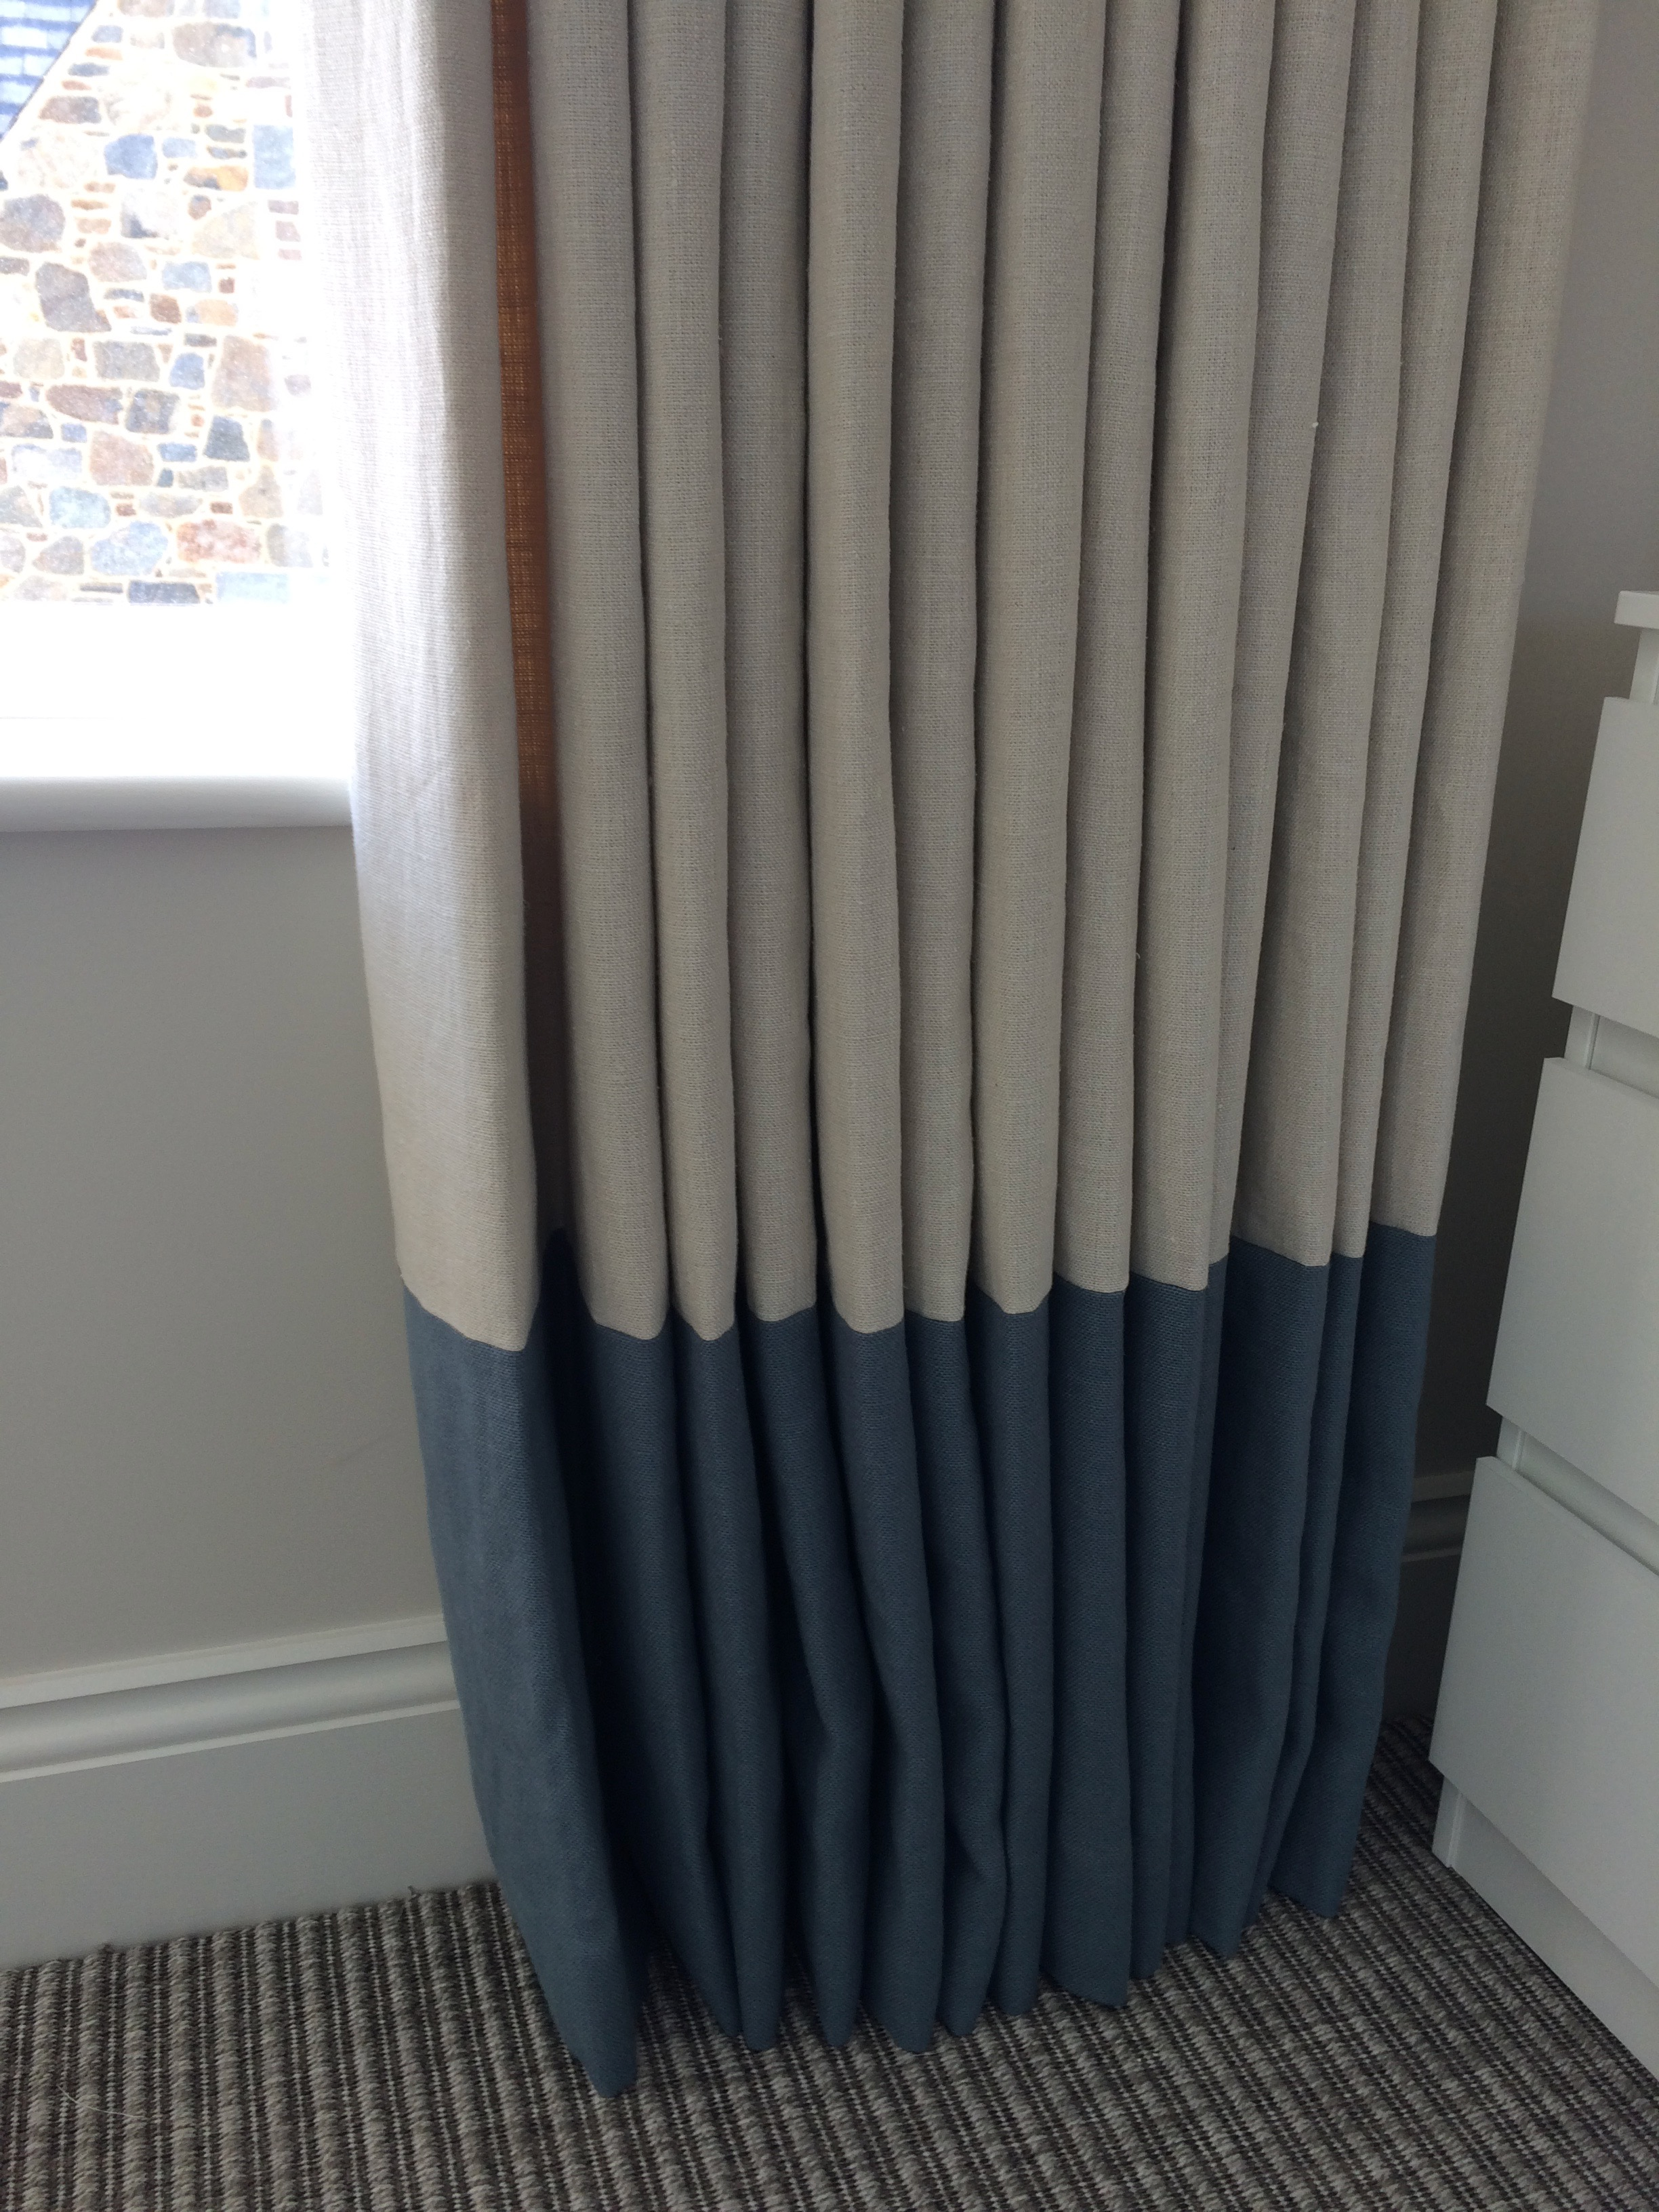 Linen Curtains With Contrasting Borders Latest News